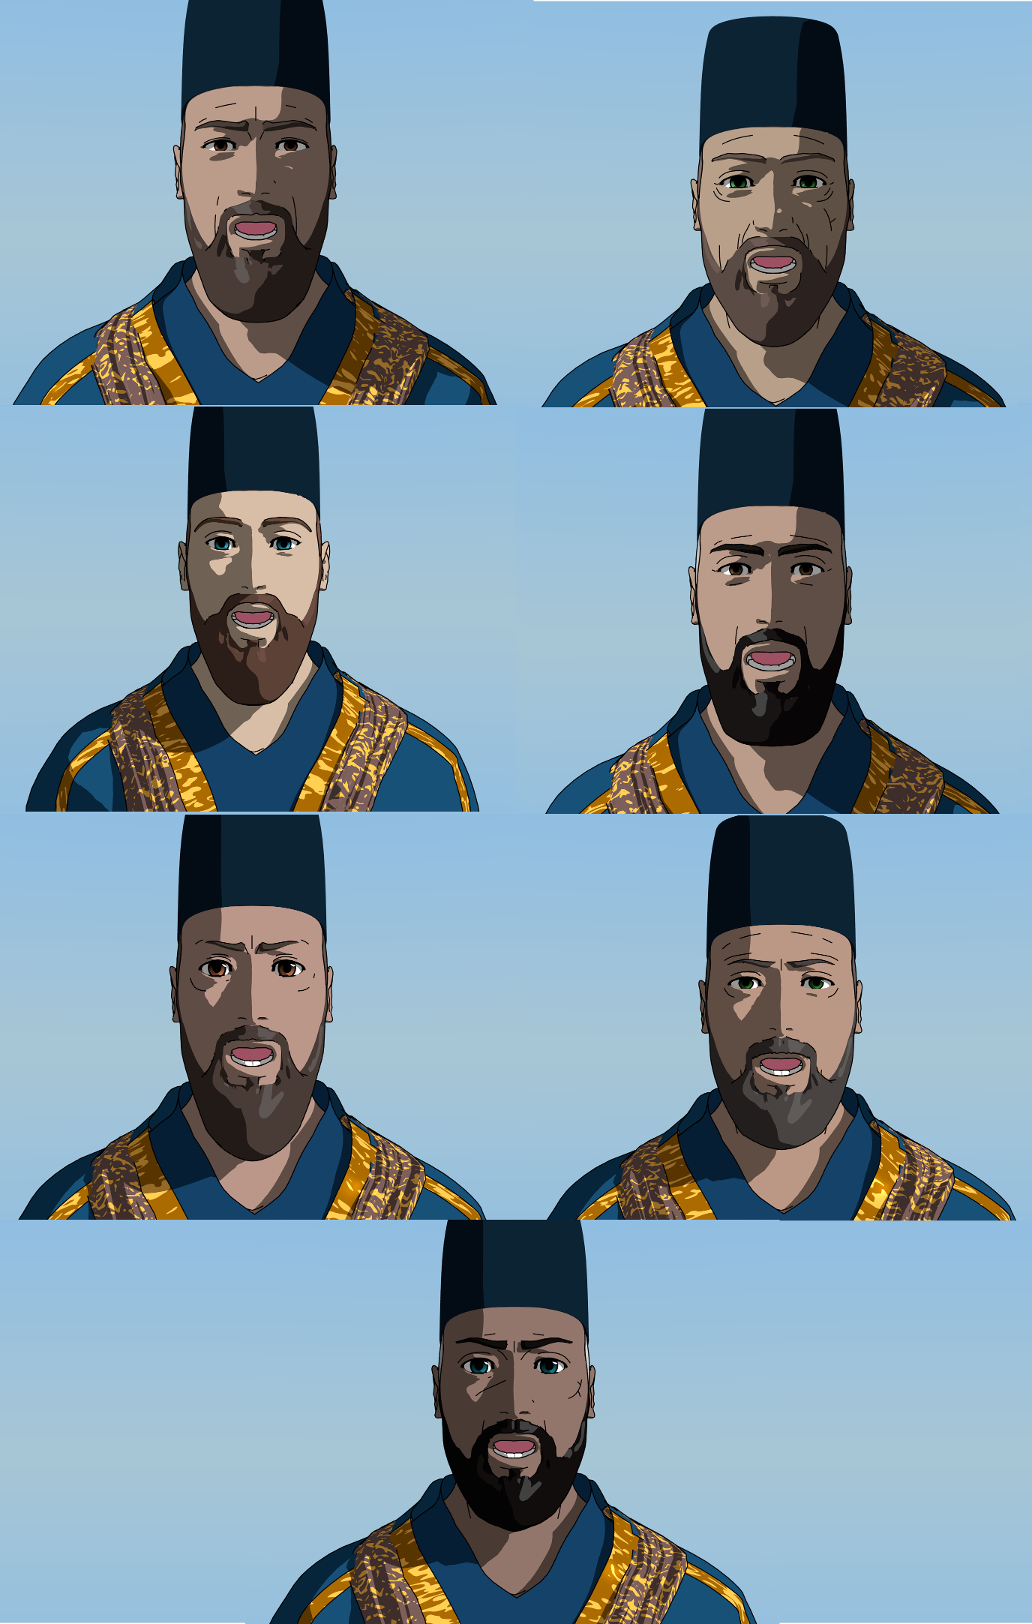 Chamberlains' faces